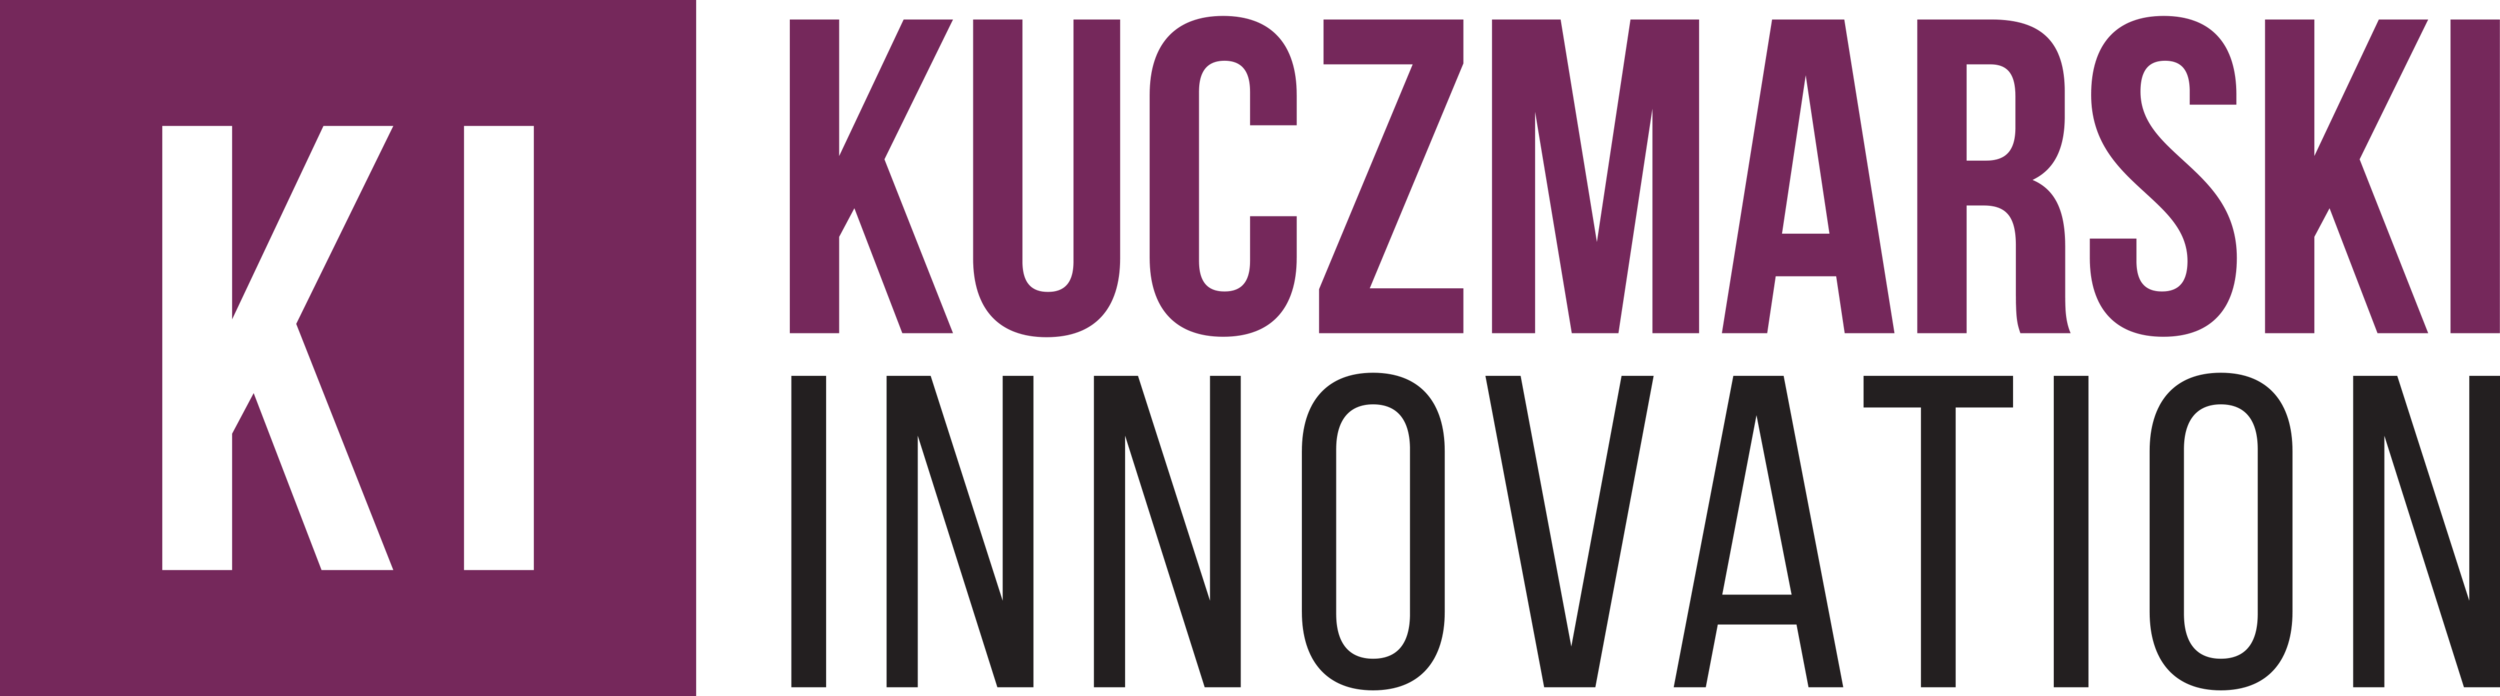 kuczmarski-logo-COLOR-final-march-2017.png